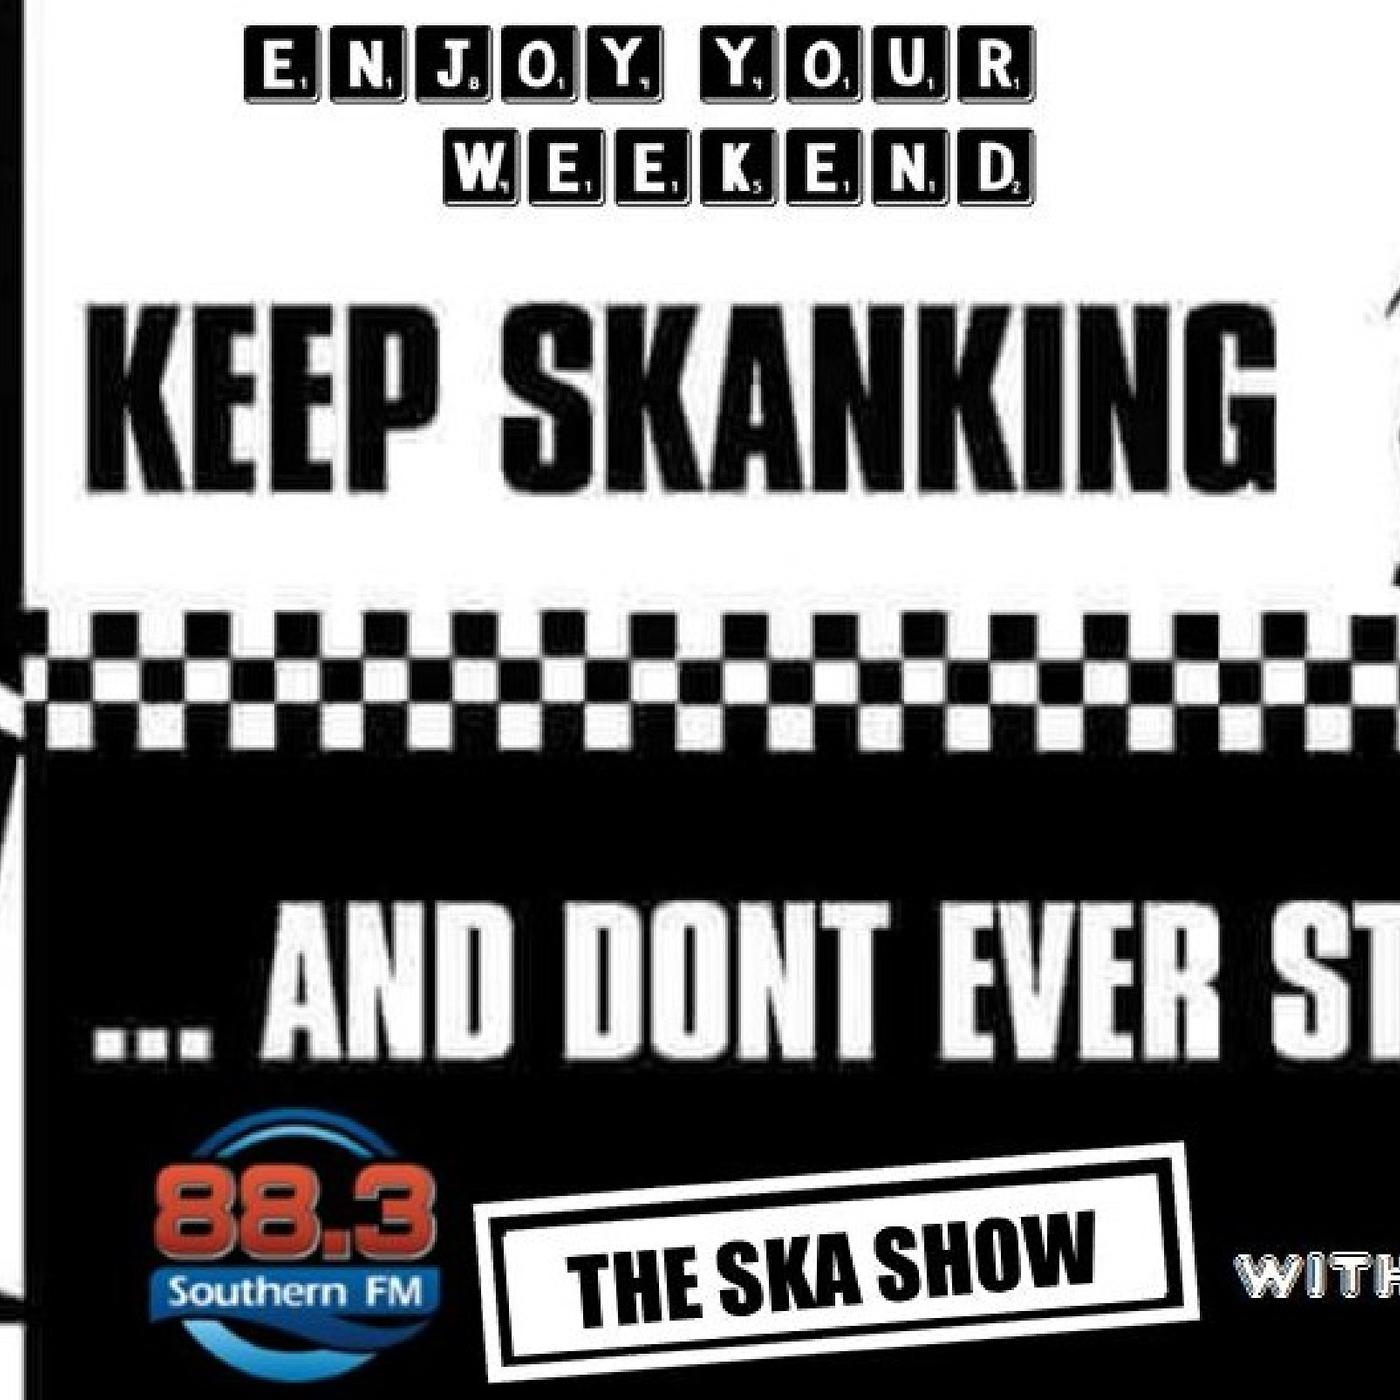 The Ska Show with Beefy, Mar 15 2018